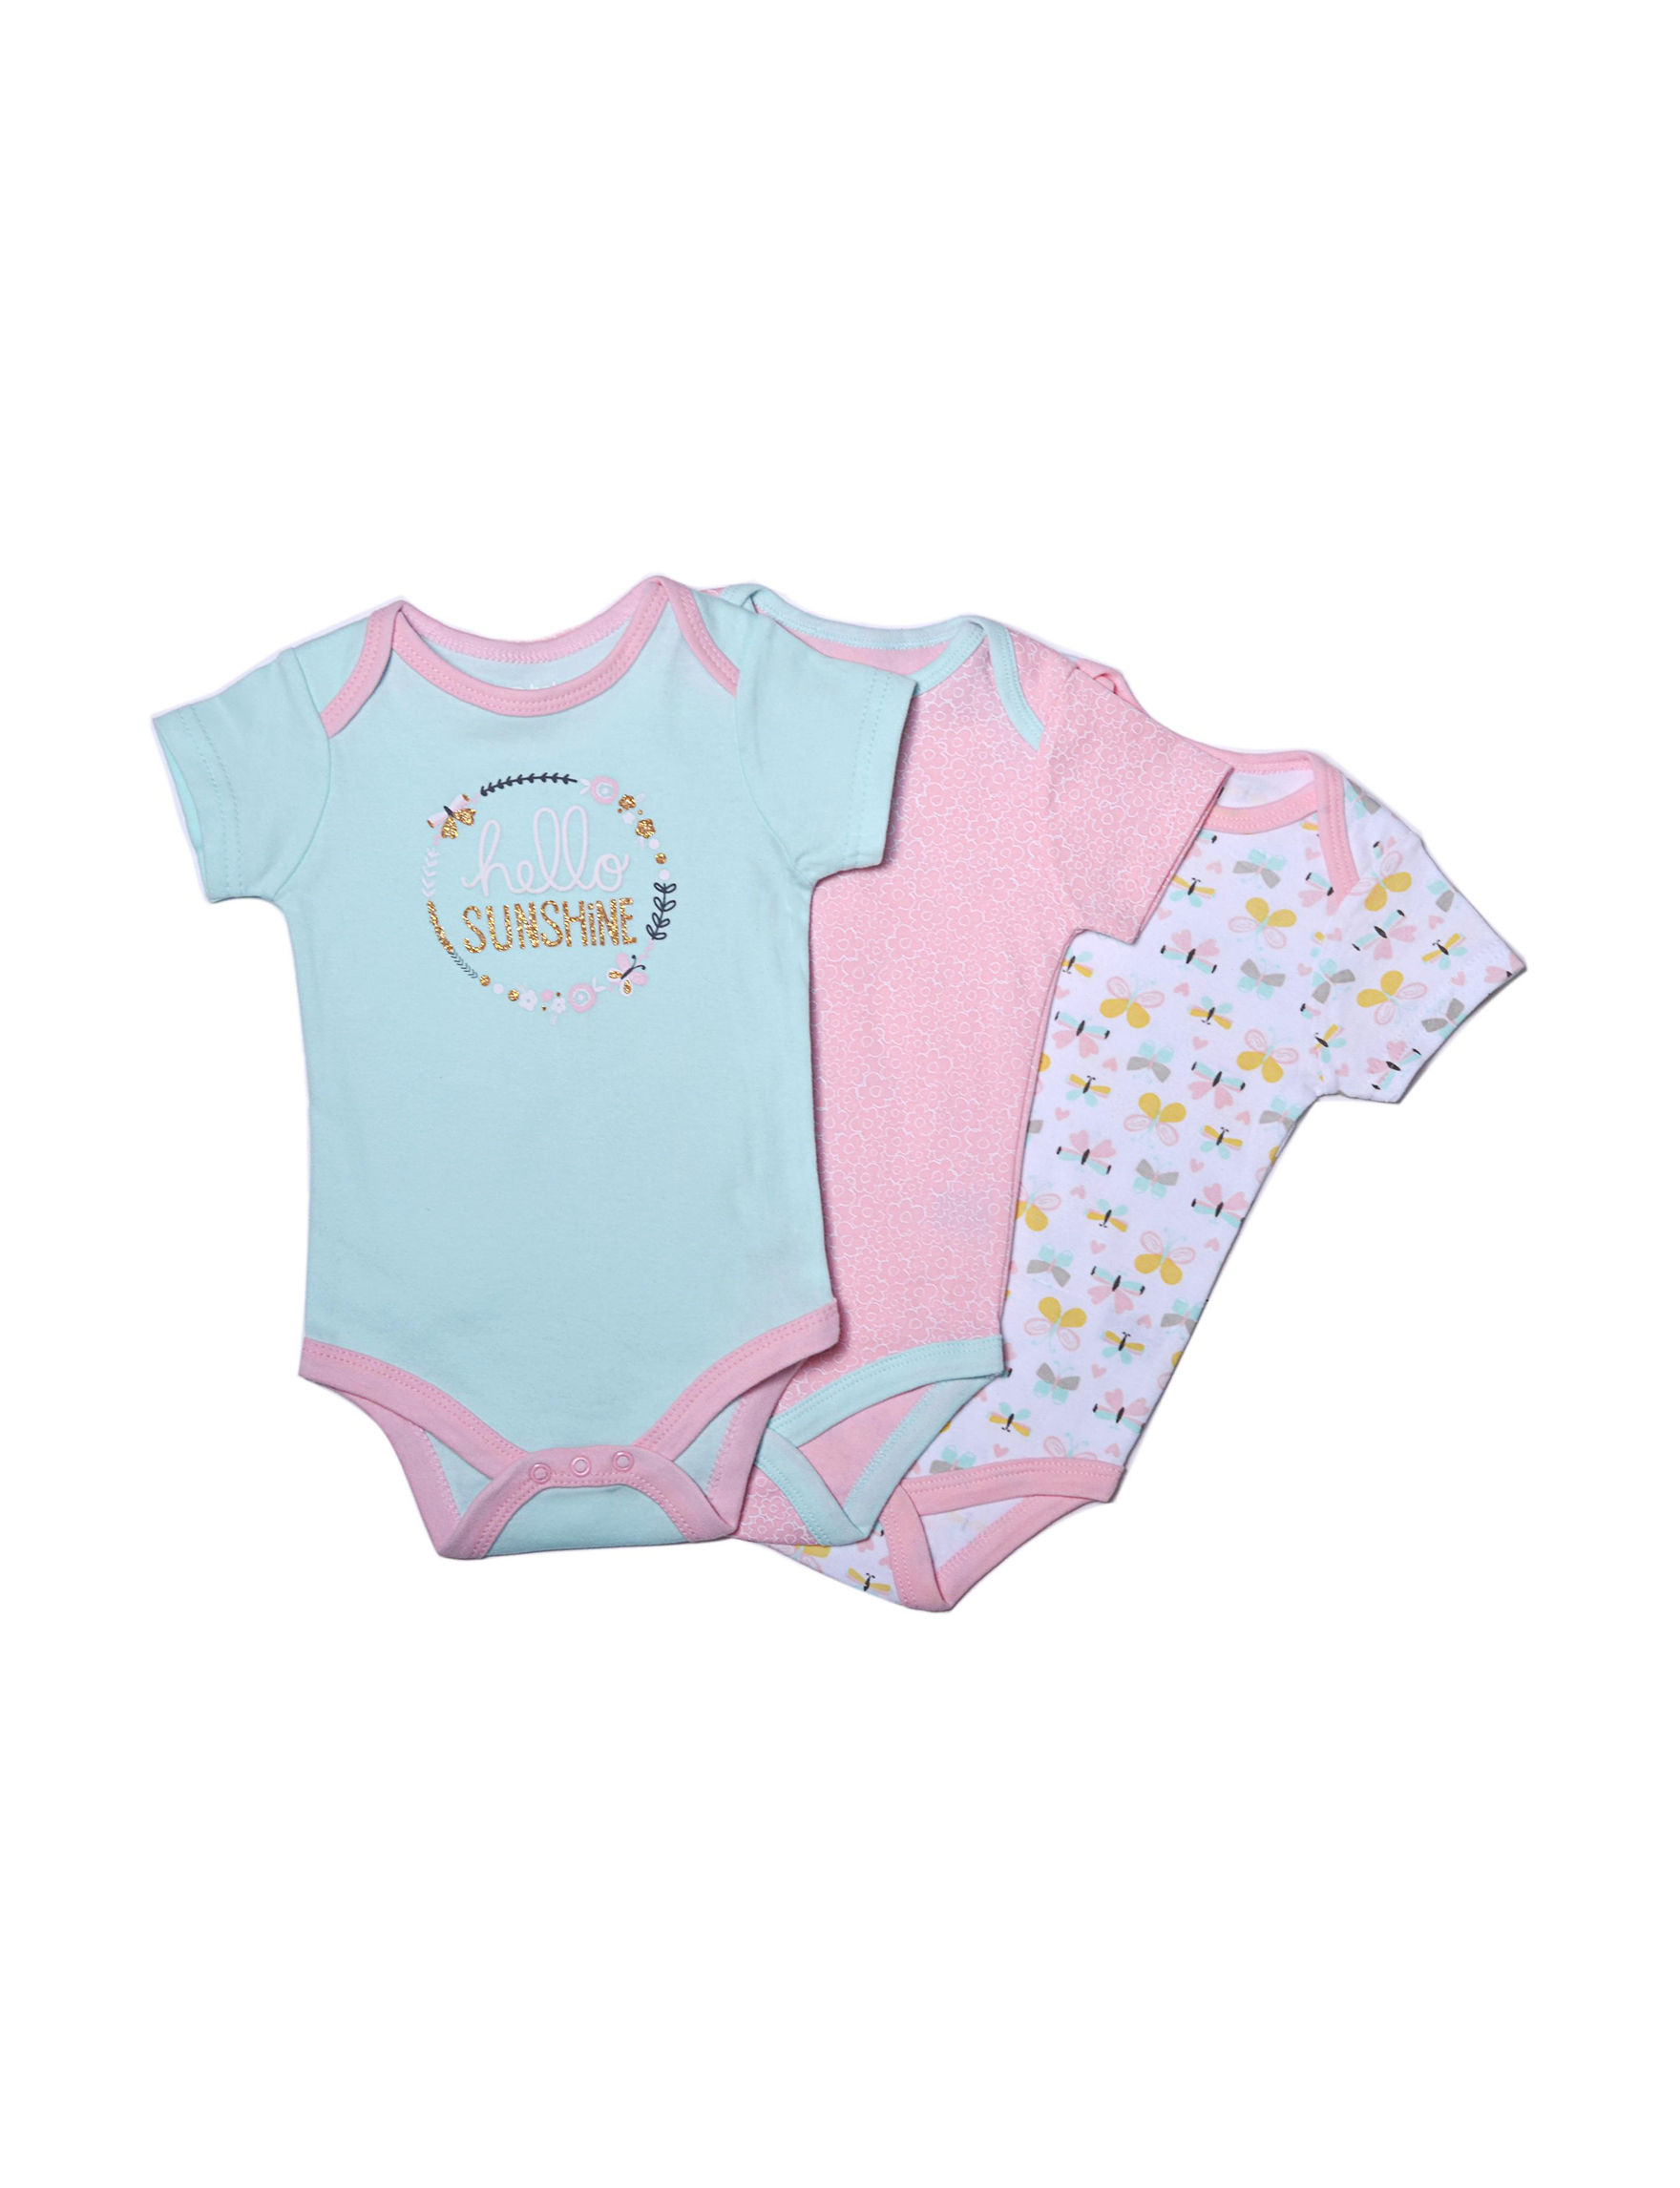 Baby Gear Teal / Pink